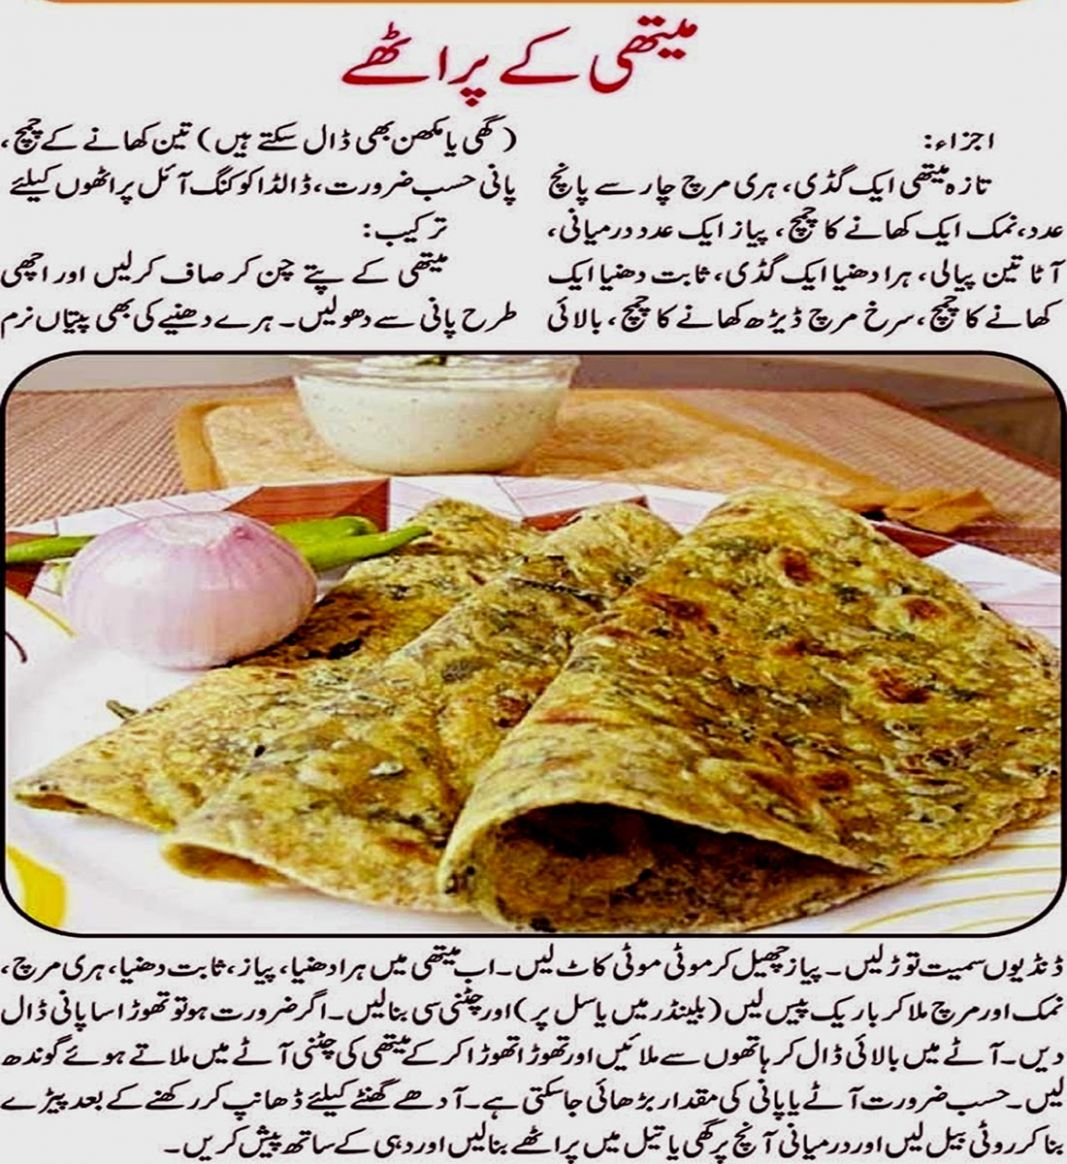 Foods Recipes In Urdu | Meri Urdu - Urdu Essay Recipes